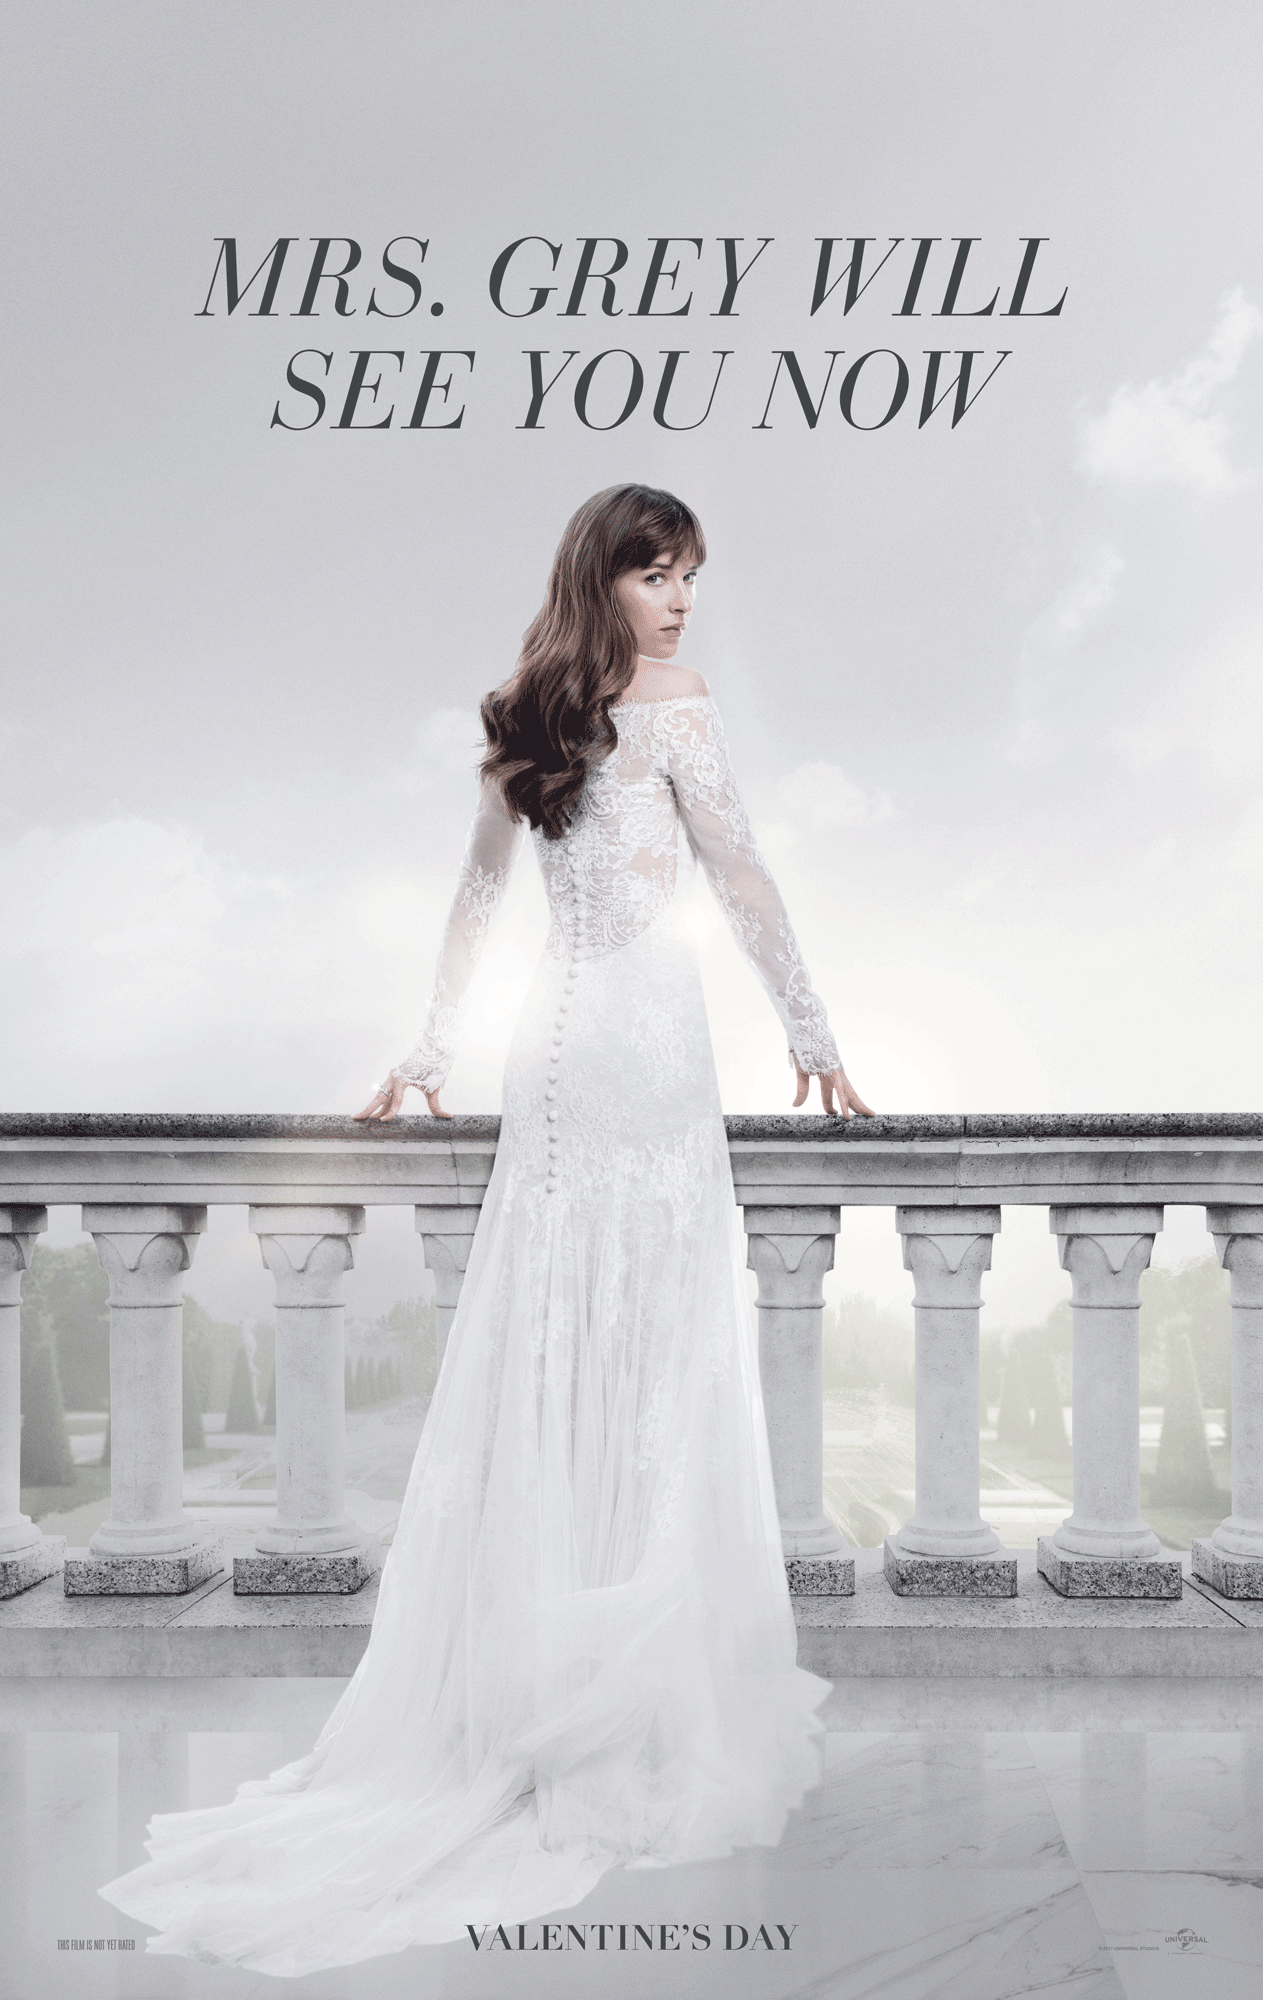 Fifty Shades Freed - Poster 2